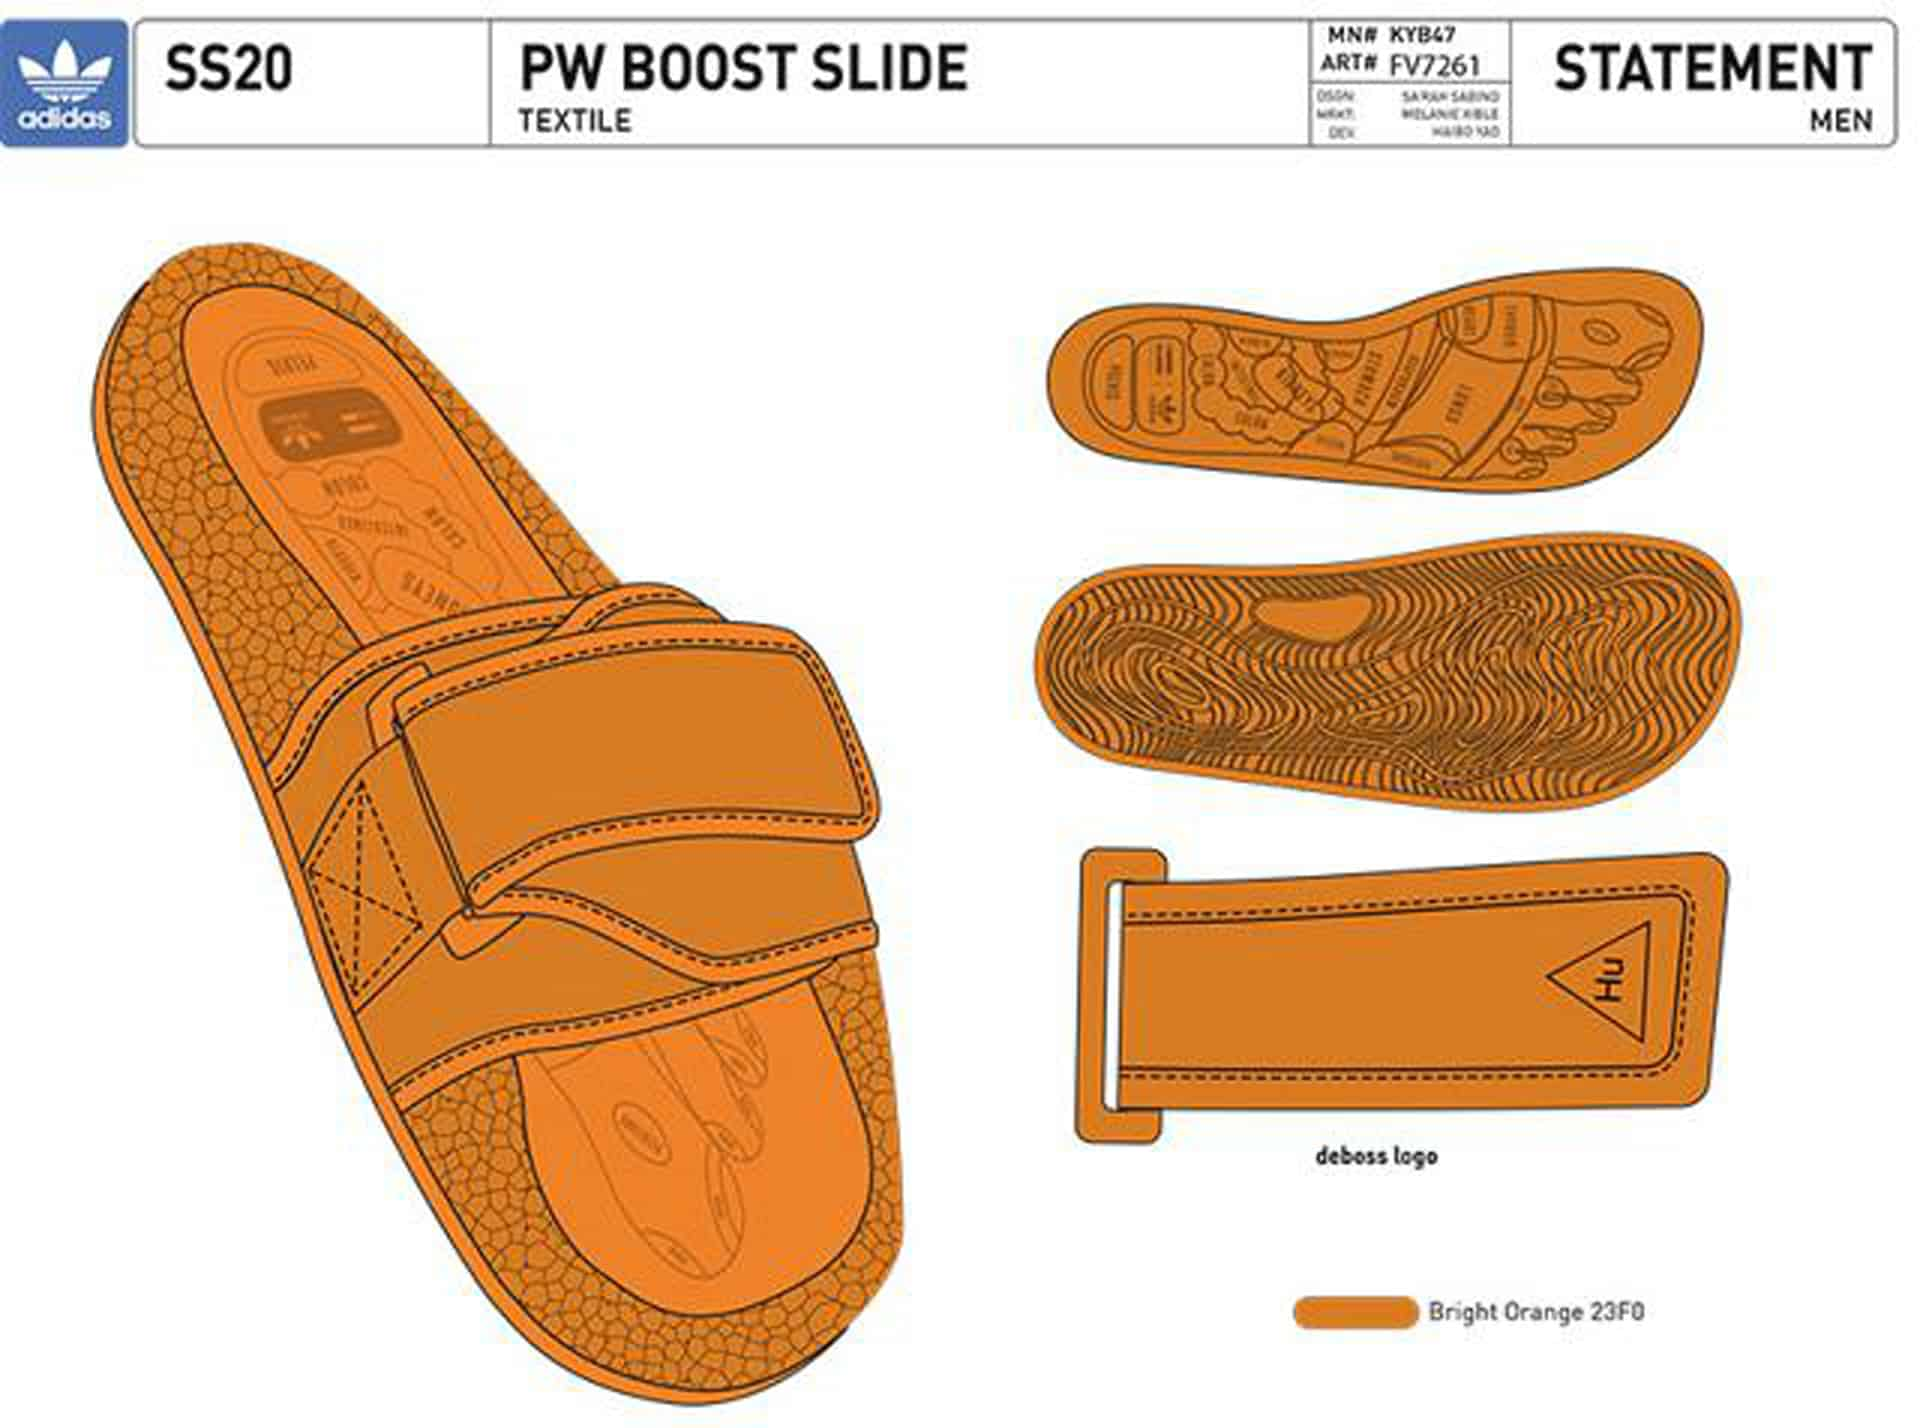 Adidas PW BOOST Slide Construction